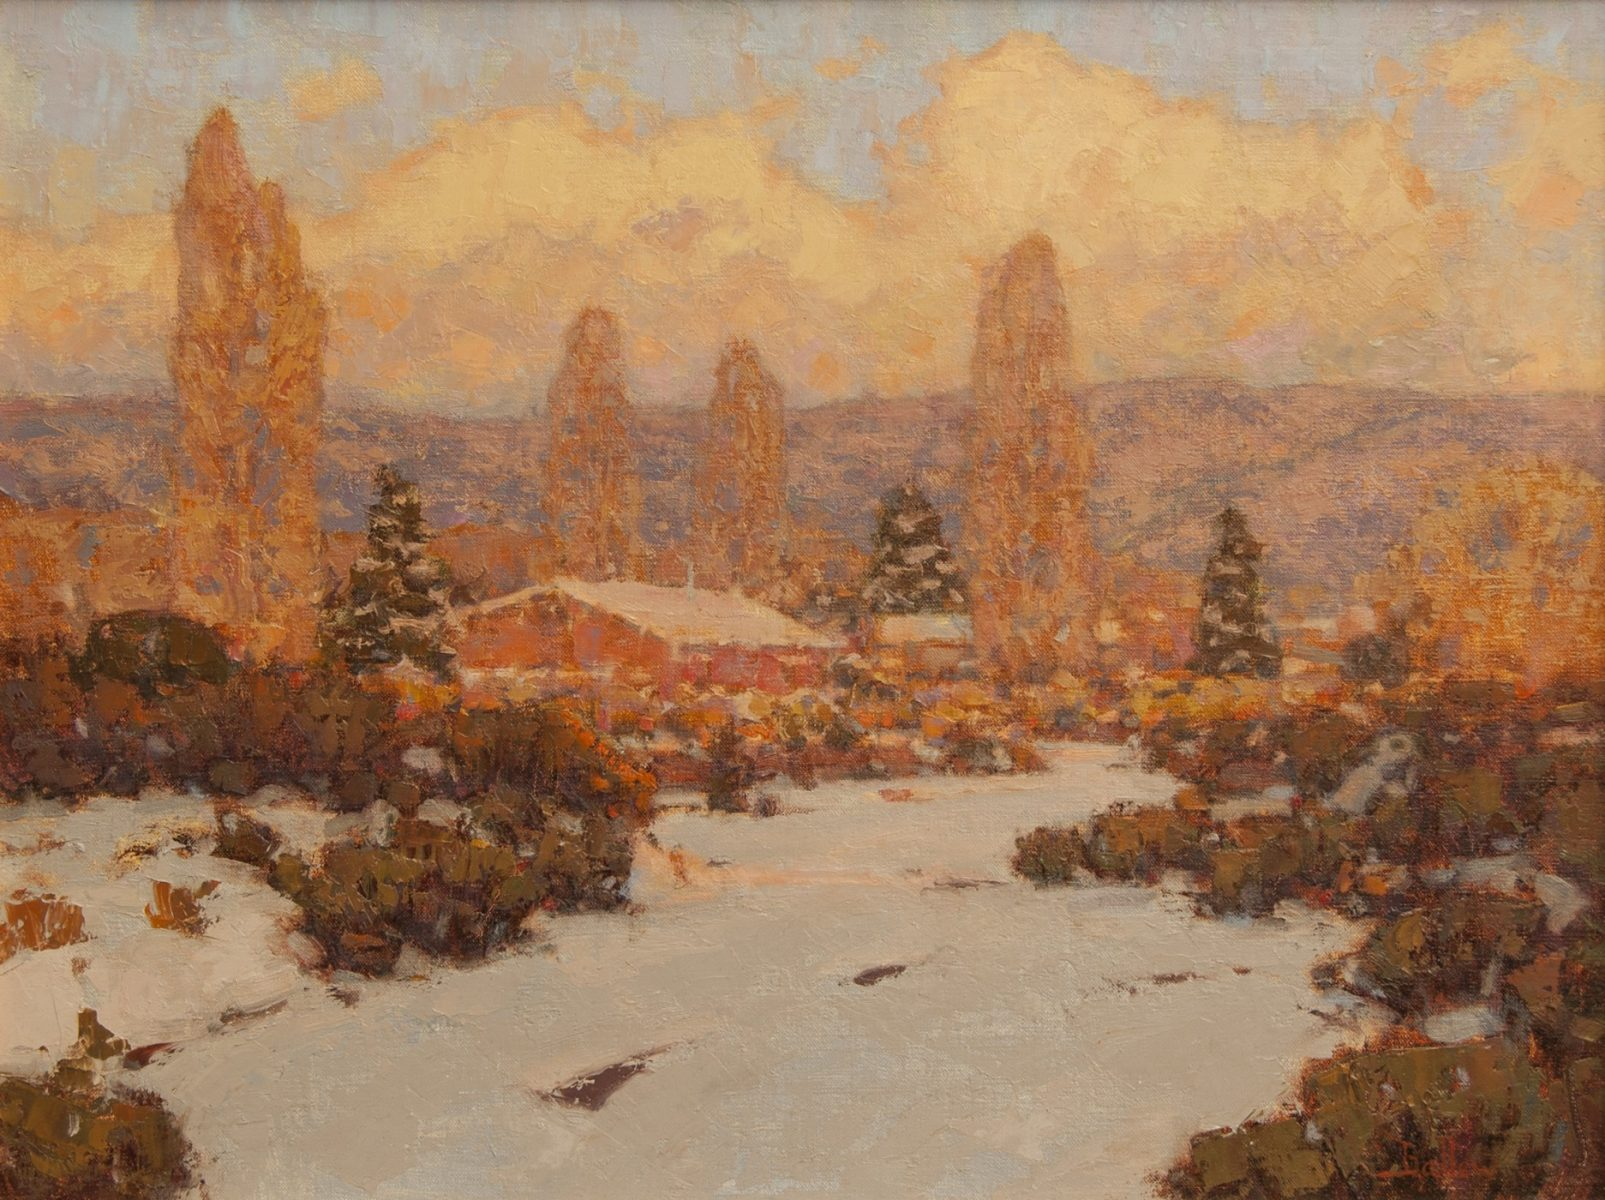 Winter Warmth, Santa Fe painting by David Ballew